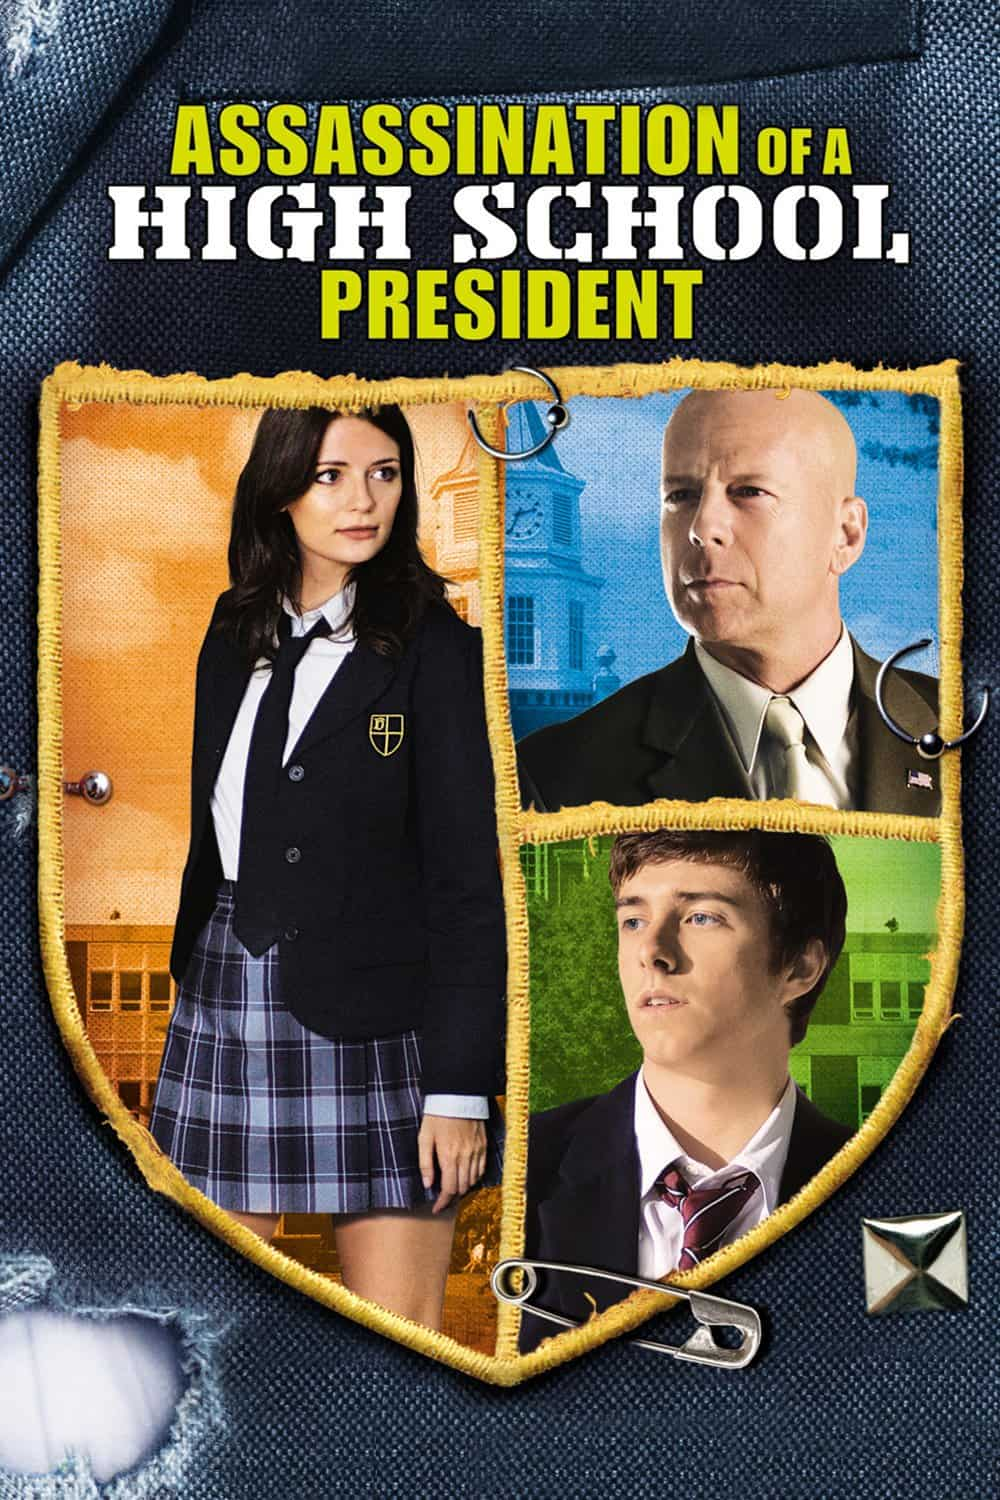 Assassination of a High School President, 2008